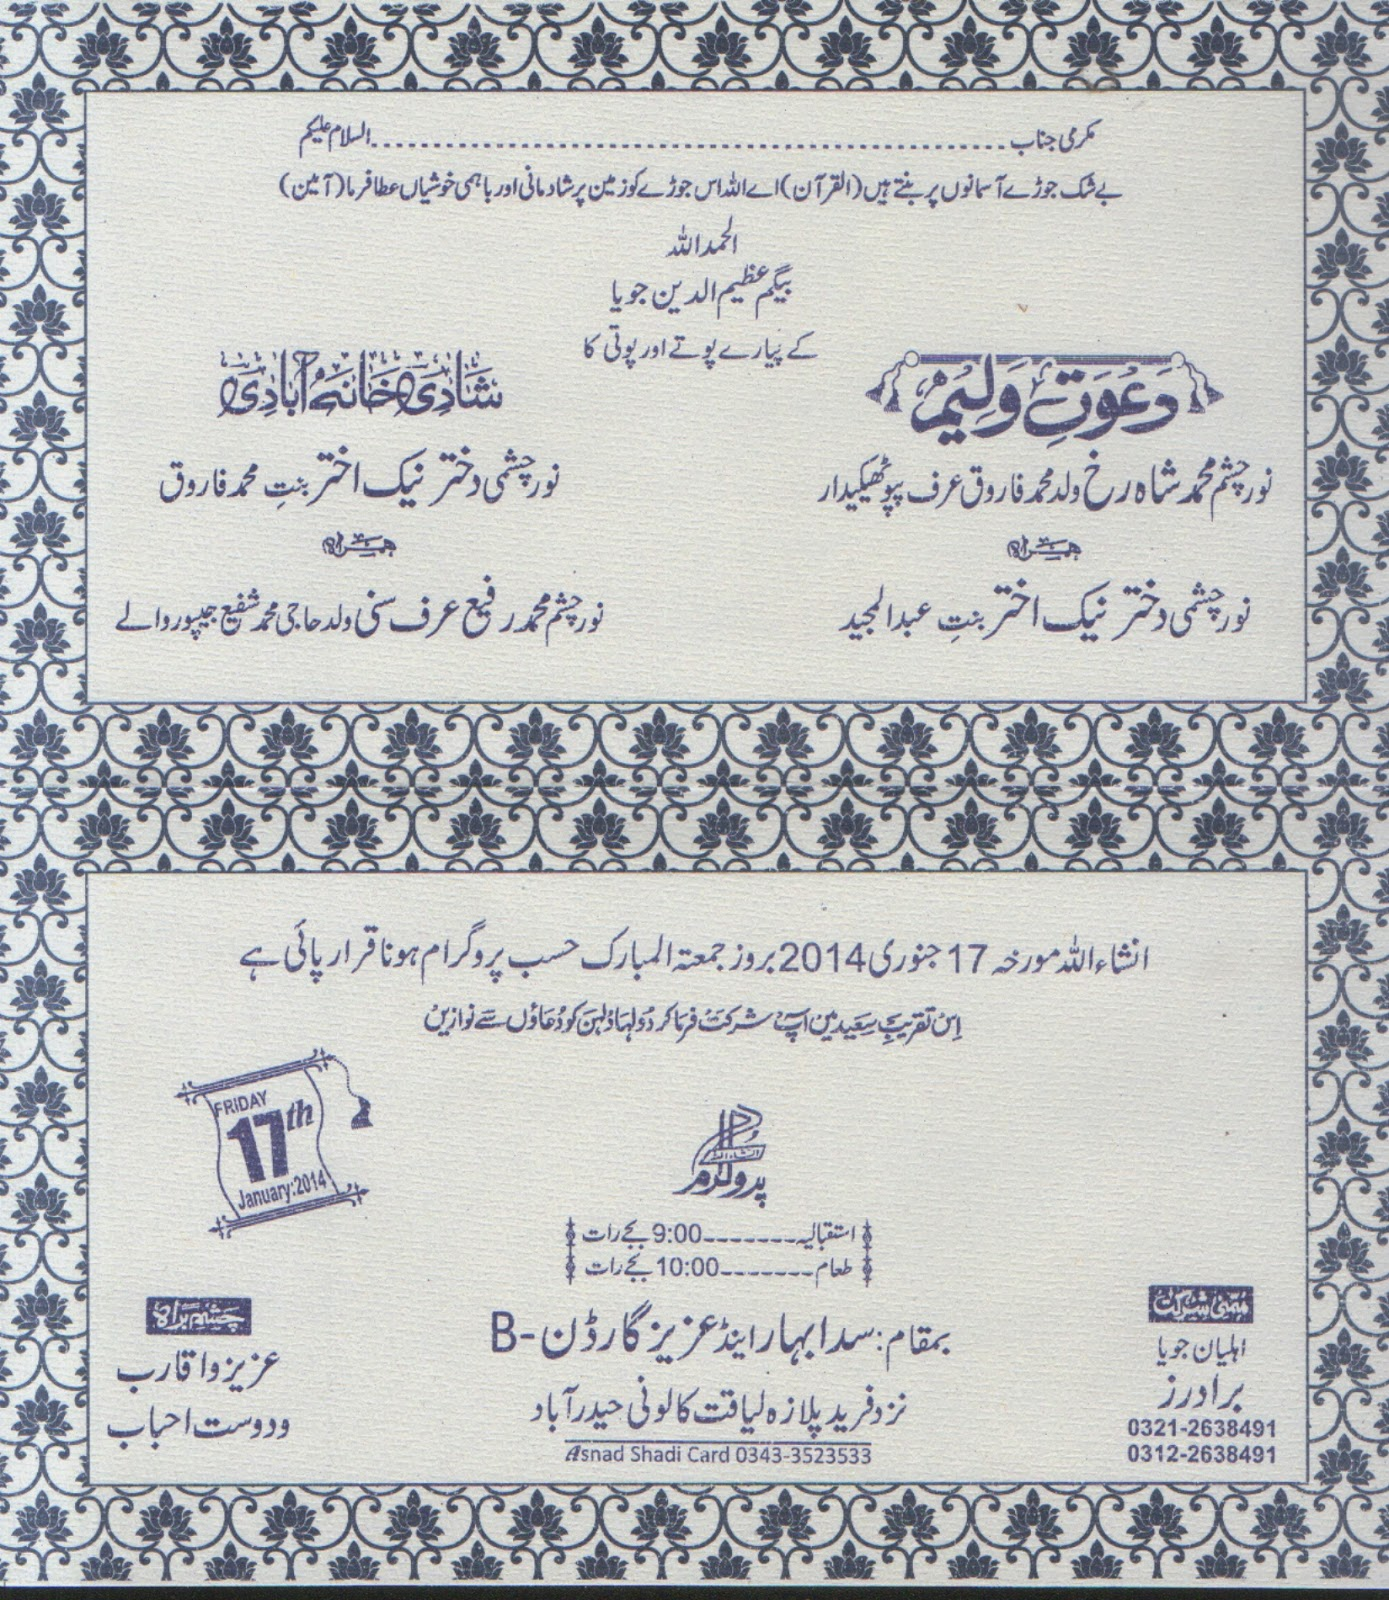 SUFFA PROJECT: Wedding Card in Urdu Joya Brothers